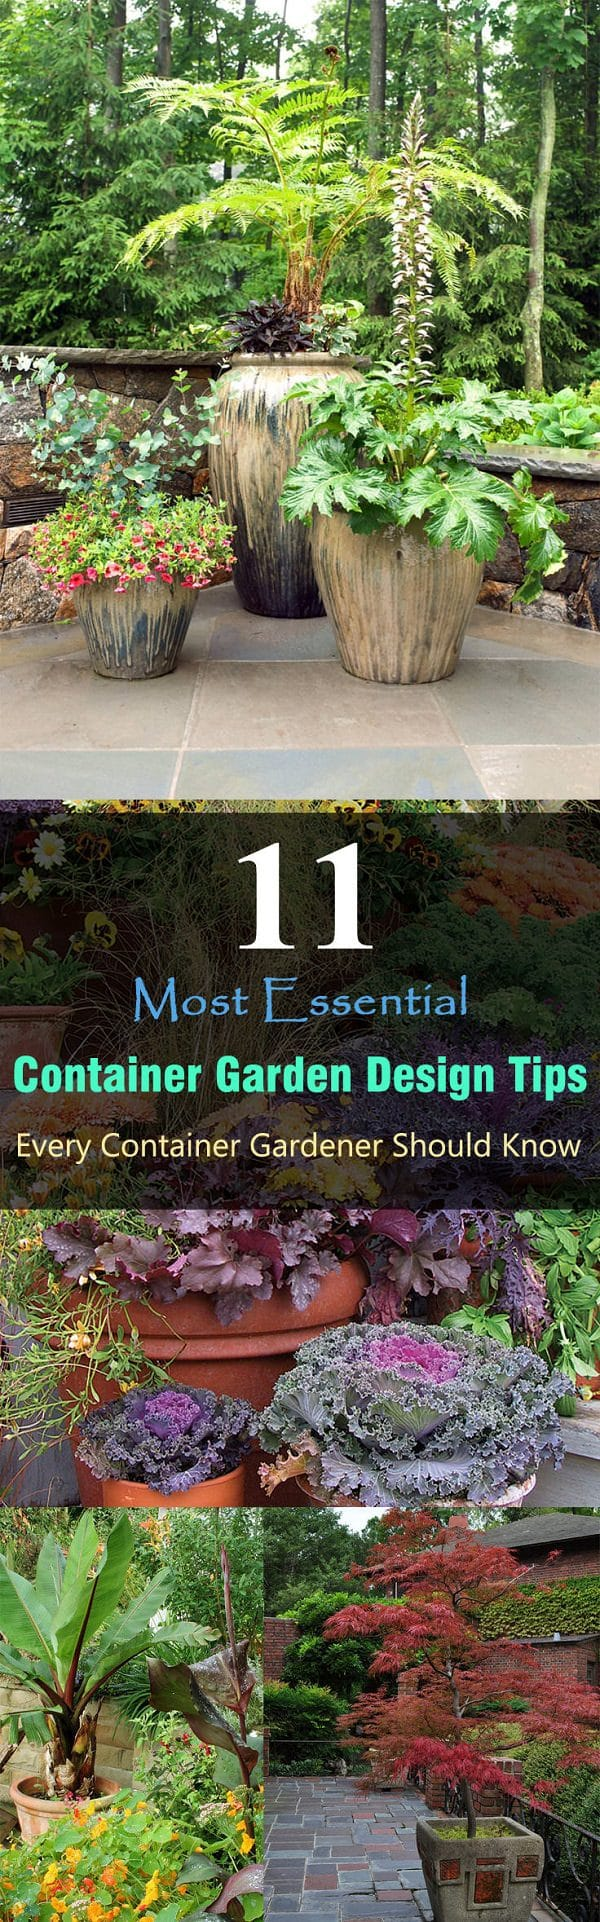 11 most essential container garden design tips designing a with these 11 important container garden design tips you can create a beautiful container garden sisterspd